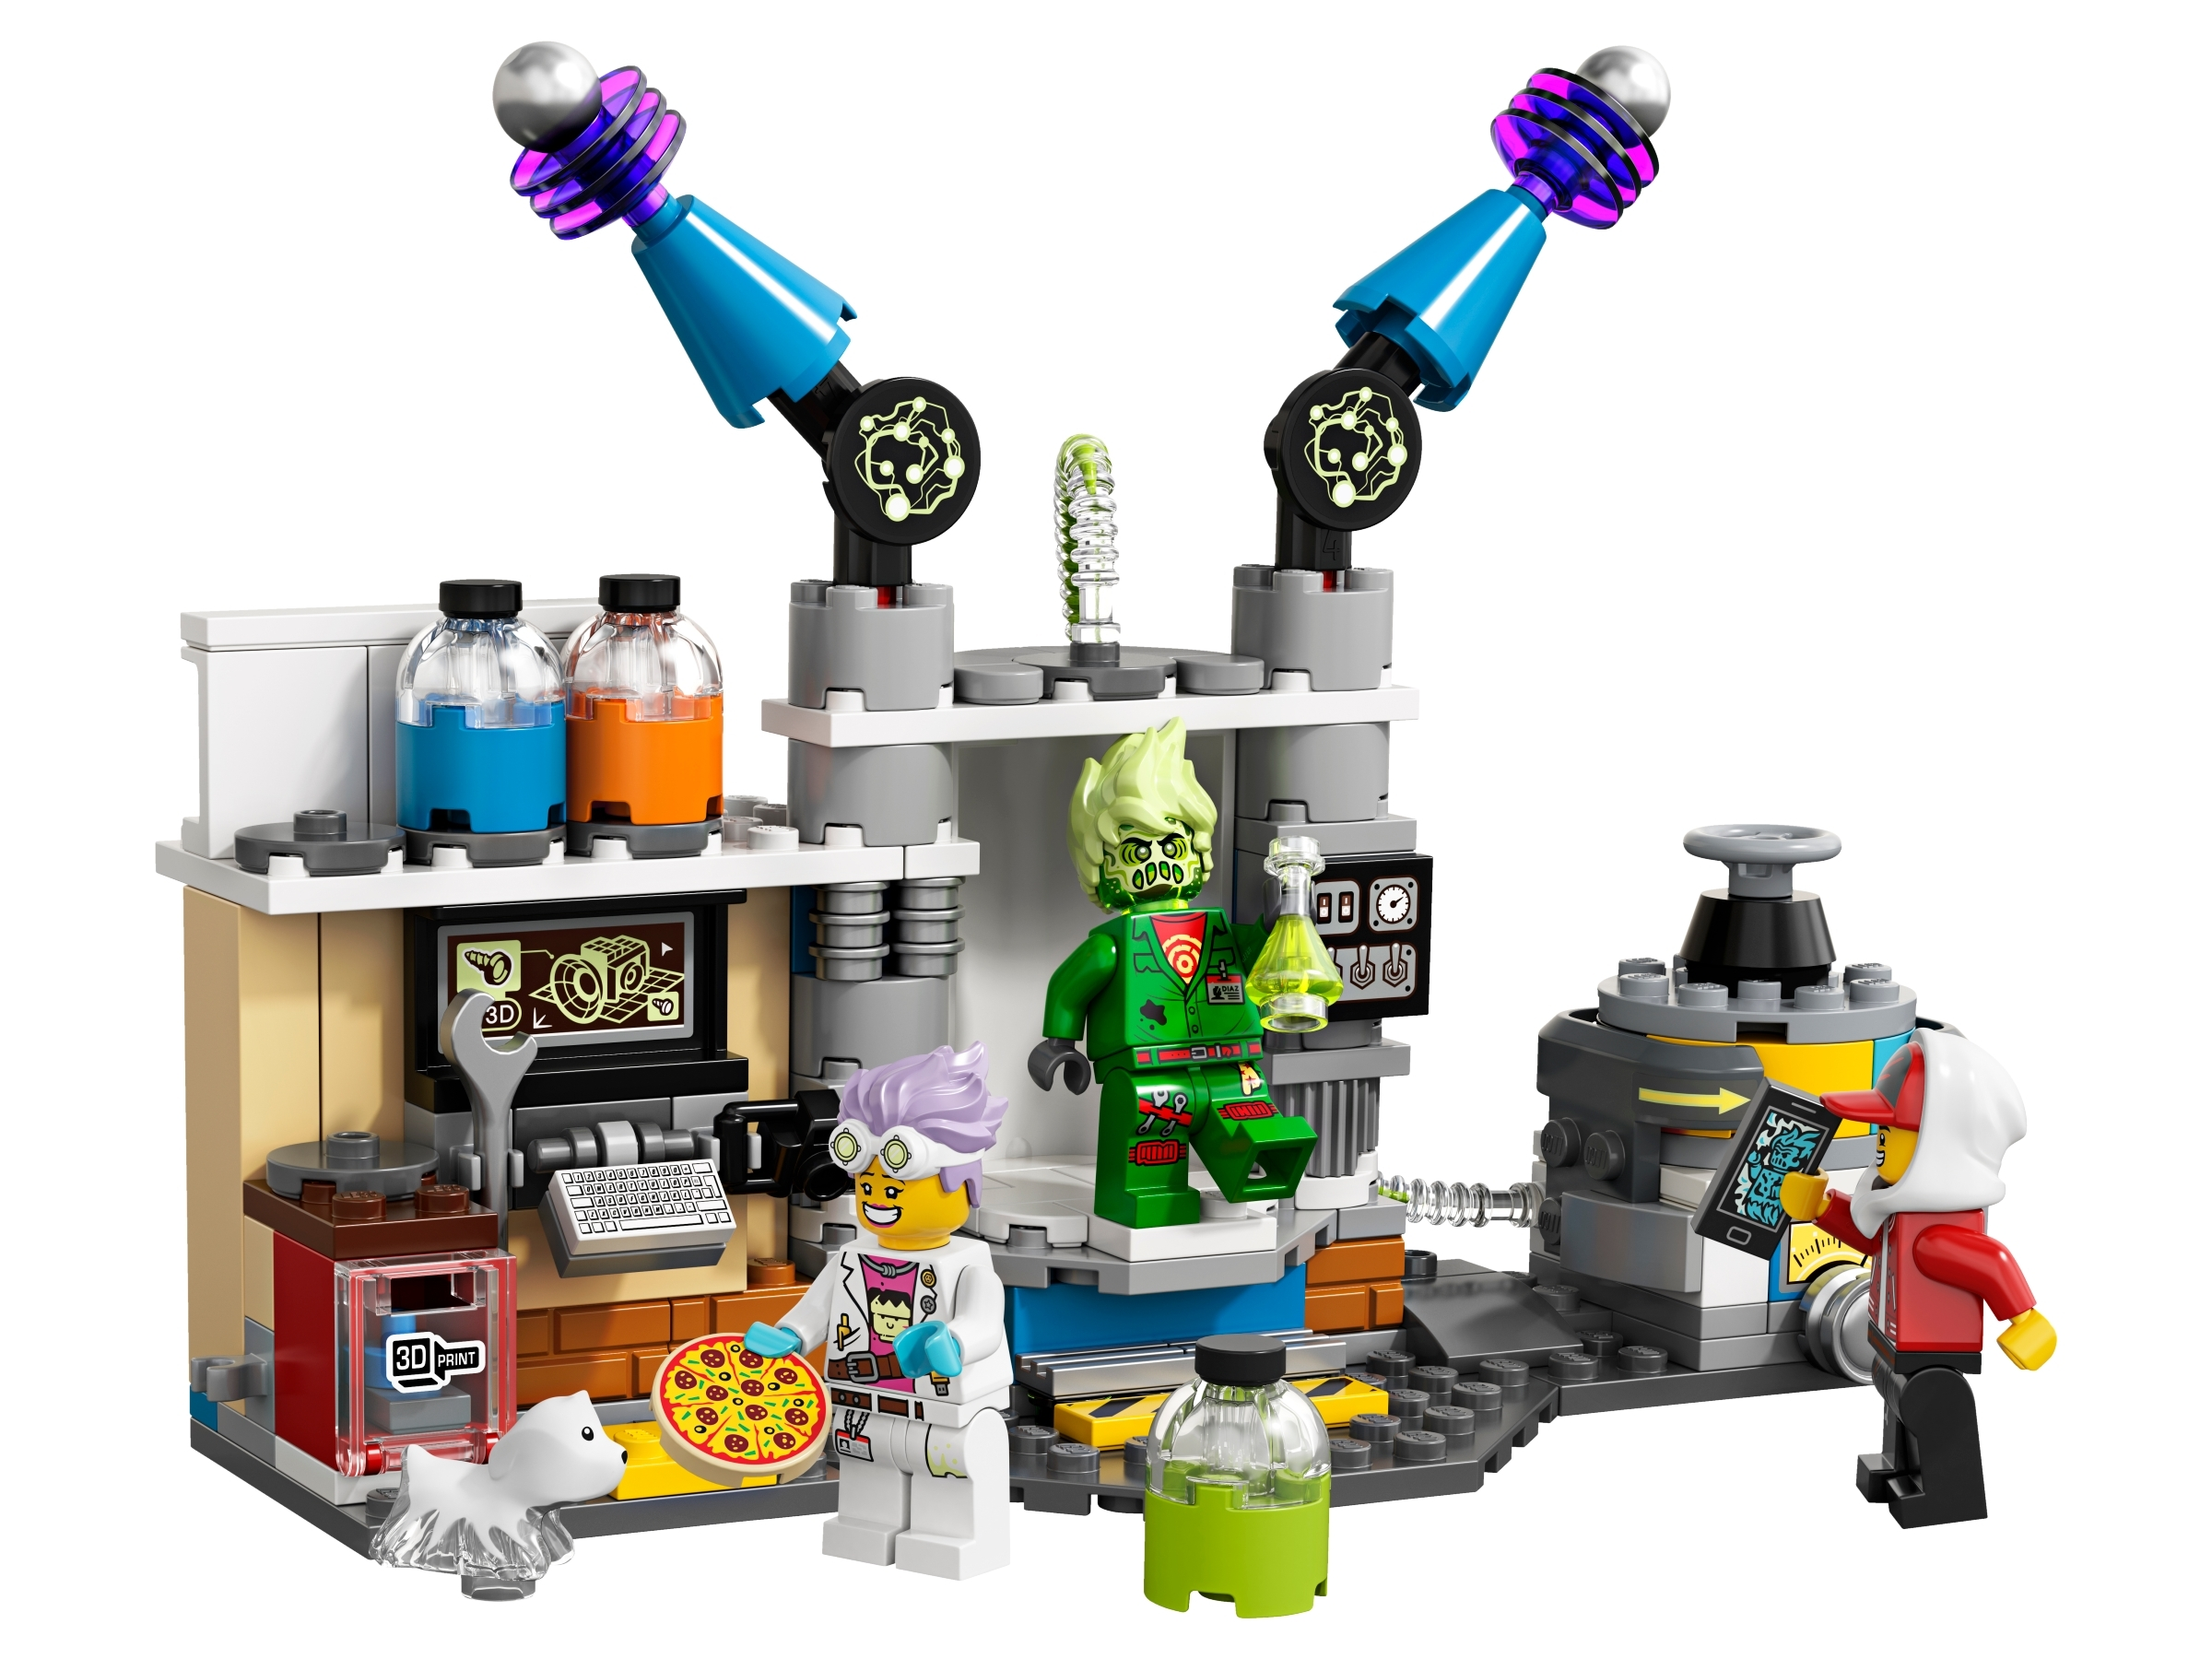 LEGO Minifigure Jack Davids NEW-from Hidden Side J.B./'s Ghost Lab set 70418